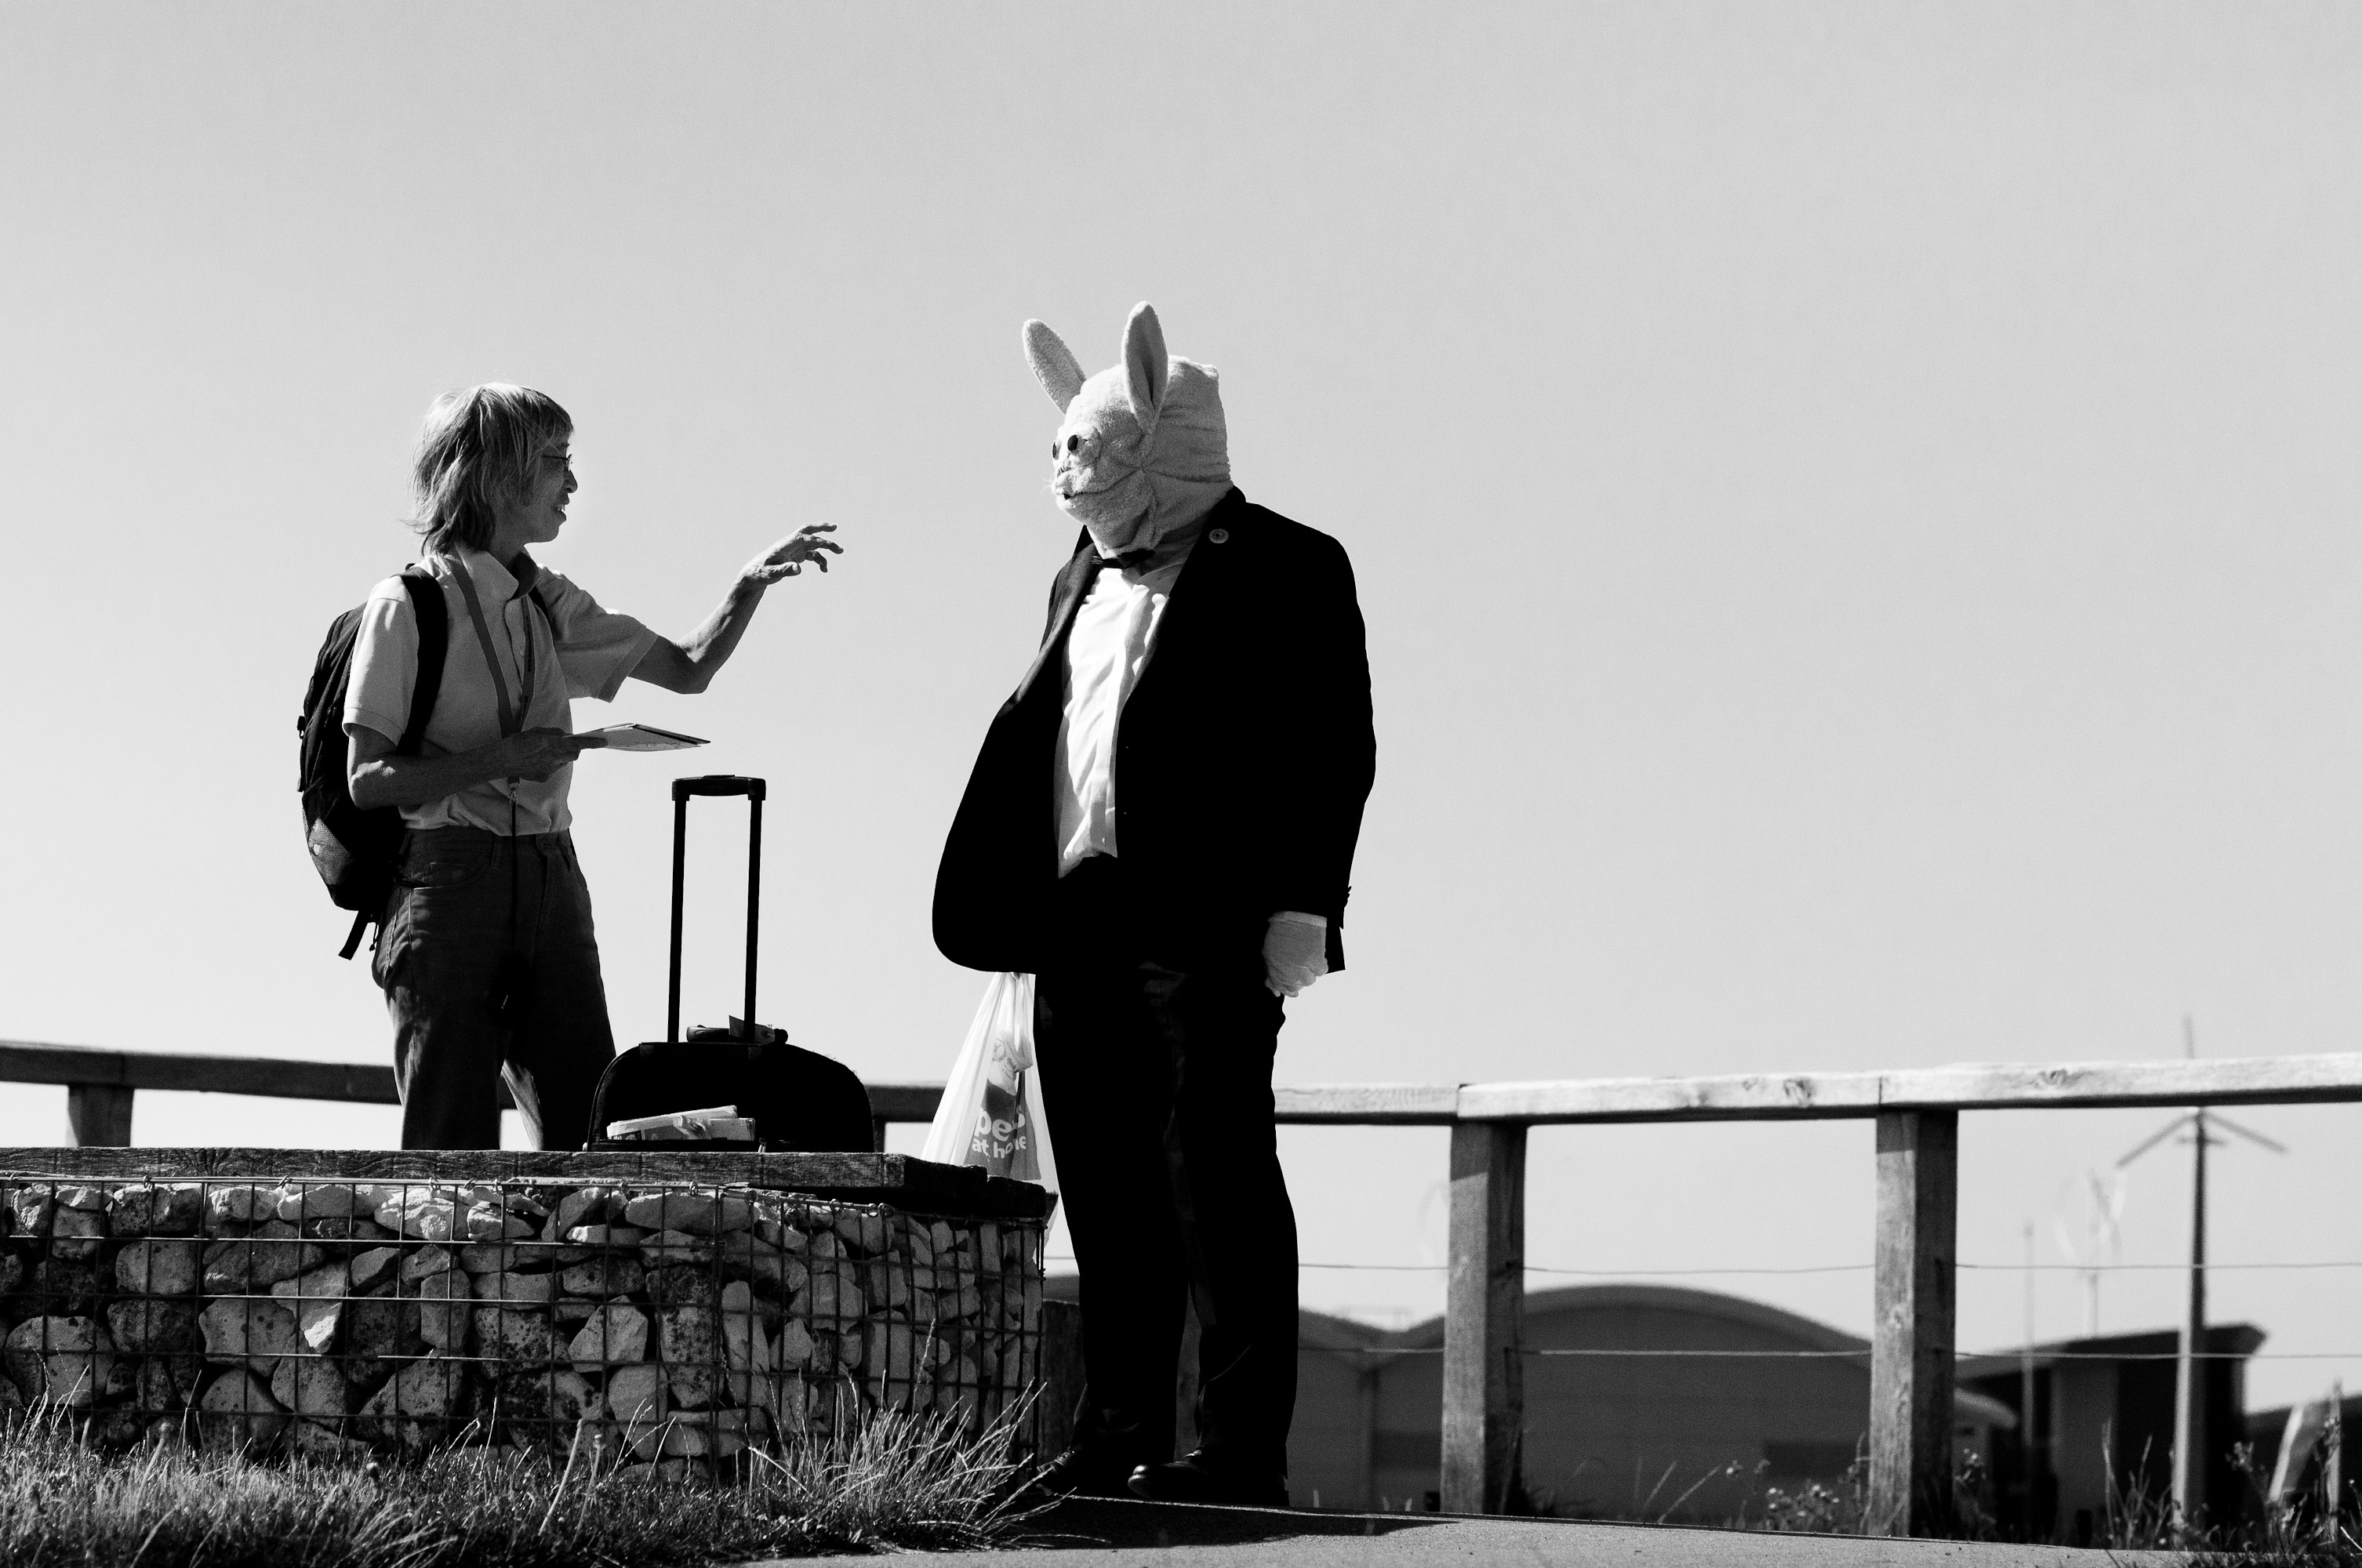 A person in a dinner suit and a white rabbit mask talks to a female tourist.